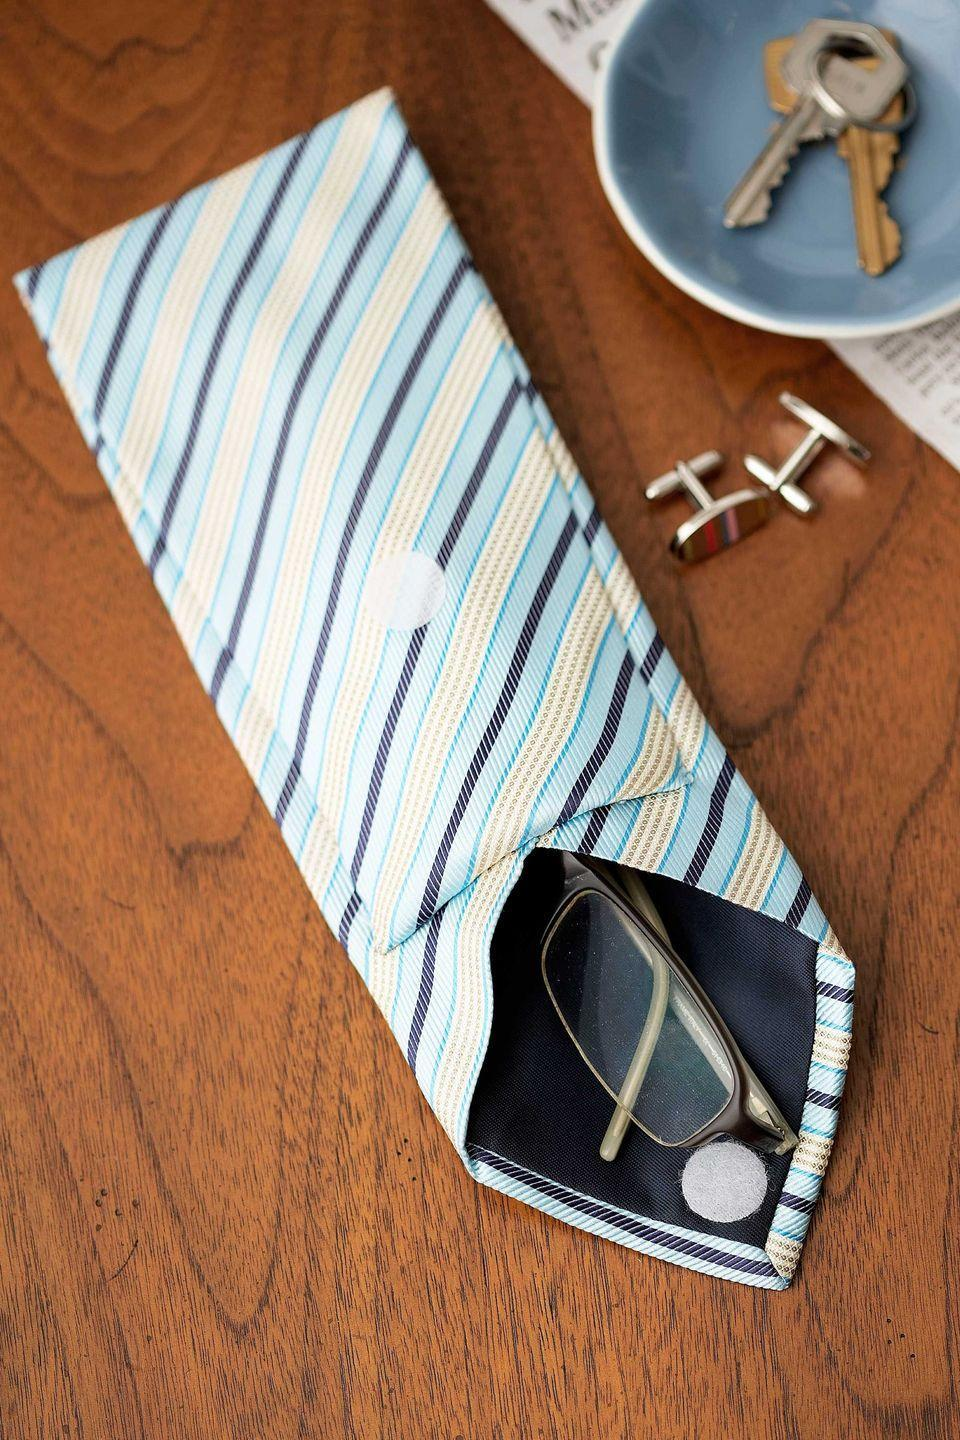 <p>Transform a traditional necktie into a nifty eyeglass case. </p><p><strong>Step 1: </strong>Lay a tie front side down. Measure and mark 17 inches in from the pointed tip, then cut the tie widthwise. Discard the narrow end of the tie.</p><p><strong>Step 2: </strong>Using a seam ripper, open the seam along the back of the tie at least six inches, to create a pouch for the glasses.</p><p><strong>Step 3: </strong>Measure eight inches in from the cut end and mark. Fold the tie at the mark toward the pointed tip; tuck under 1/2 inch of cut edge and pin.</p><p><strong>Step 4</strong>: Using hand-stitches along the top and sides, secure the folded-over portion of tie to the top layer of fabric beneath it (taking care not to sew the pouch closed). Finish by affixing a set of self-adhesive Velcro dots to keep the case closed.</p>